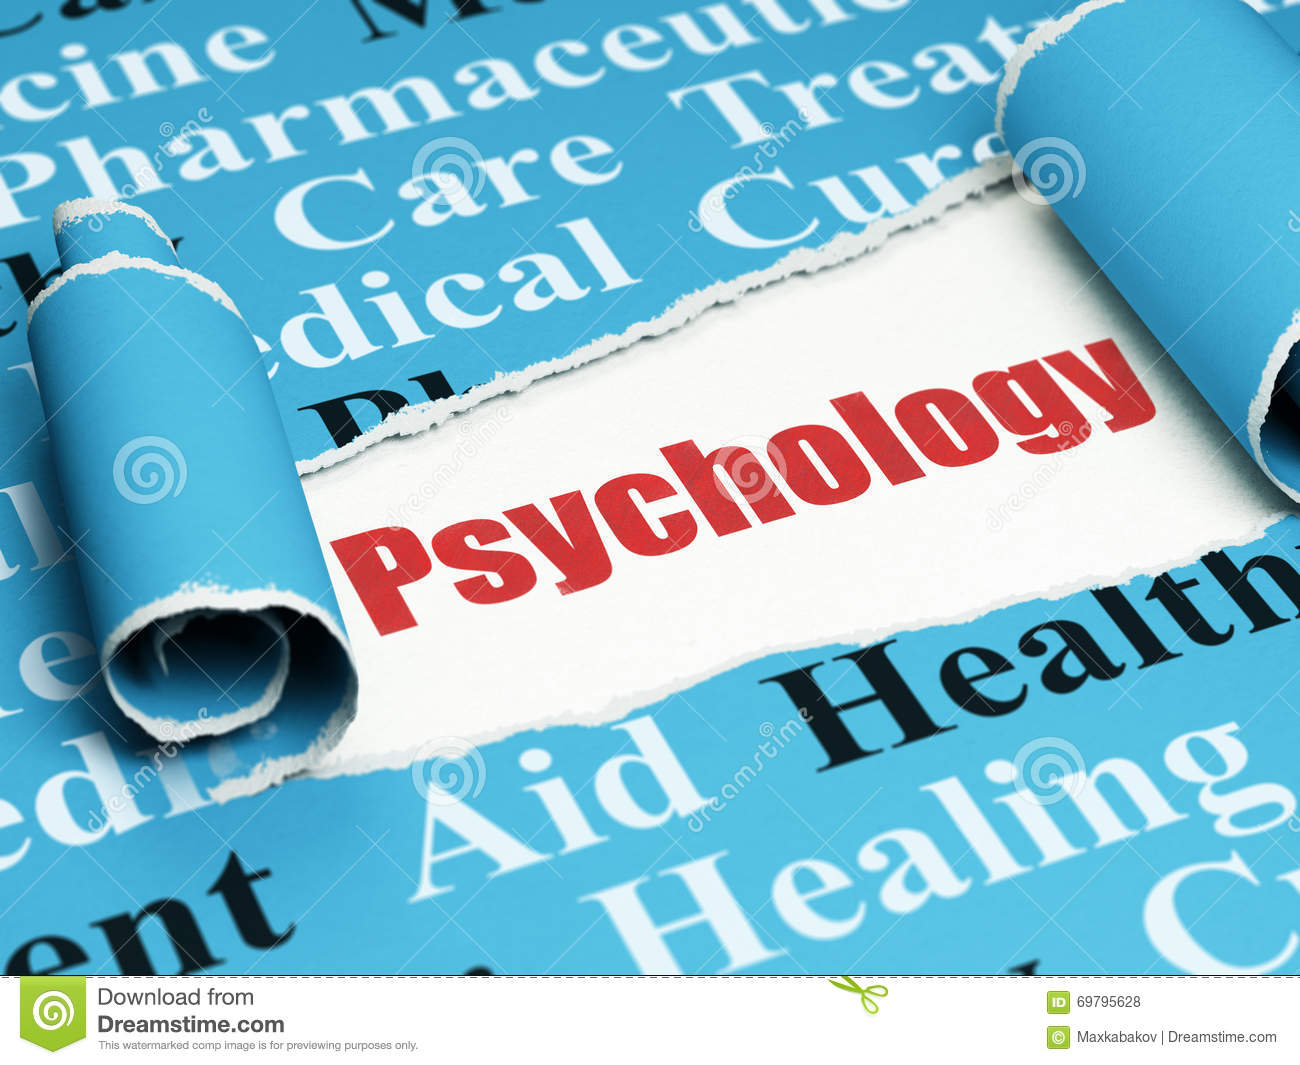 010 Research Paper Psychology On Dreams Health Concept Red Text Under Piece Torn Curled Blue Tag Cloud Rendering Singular Articles Full